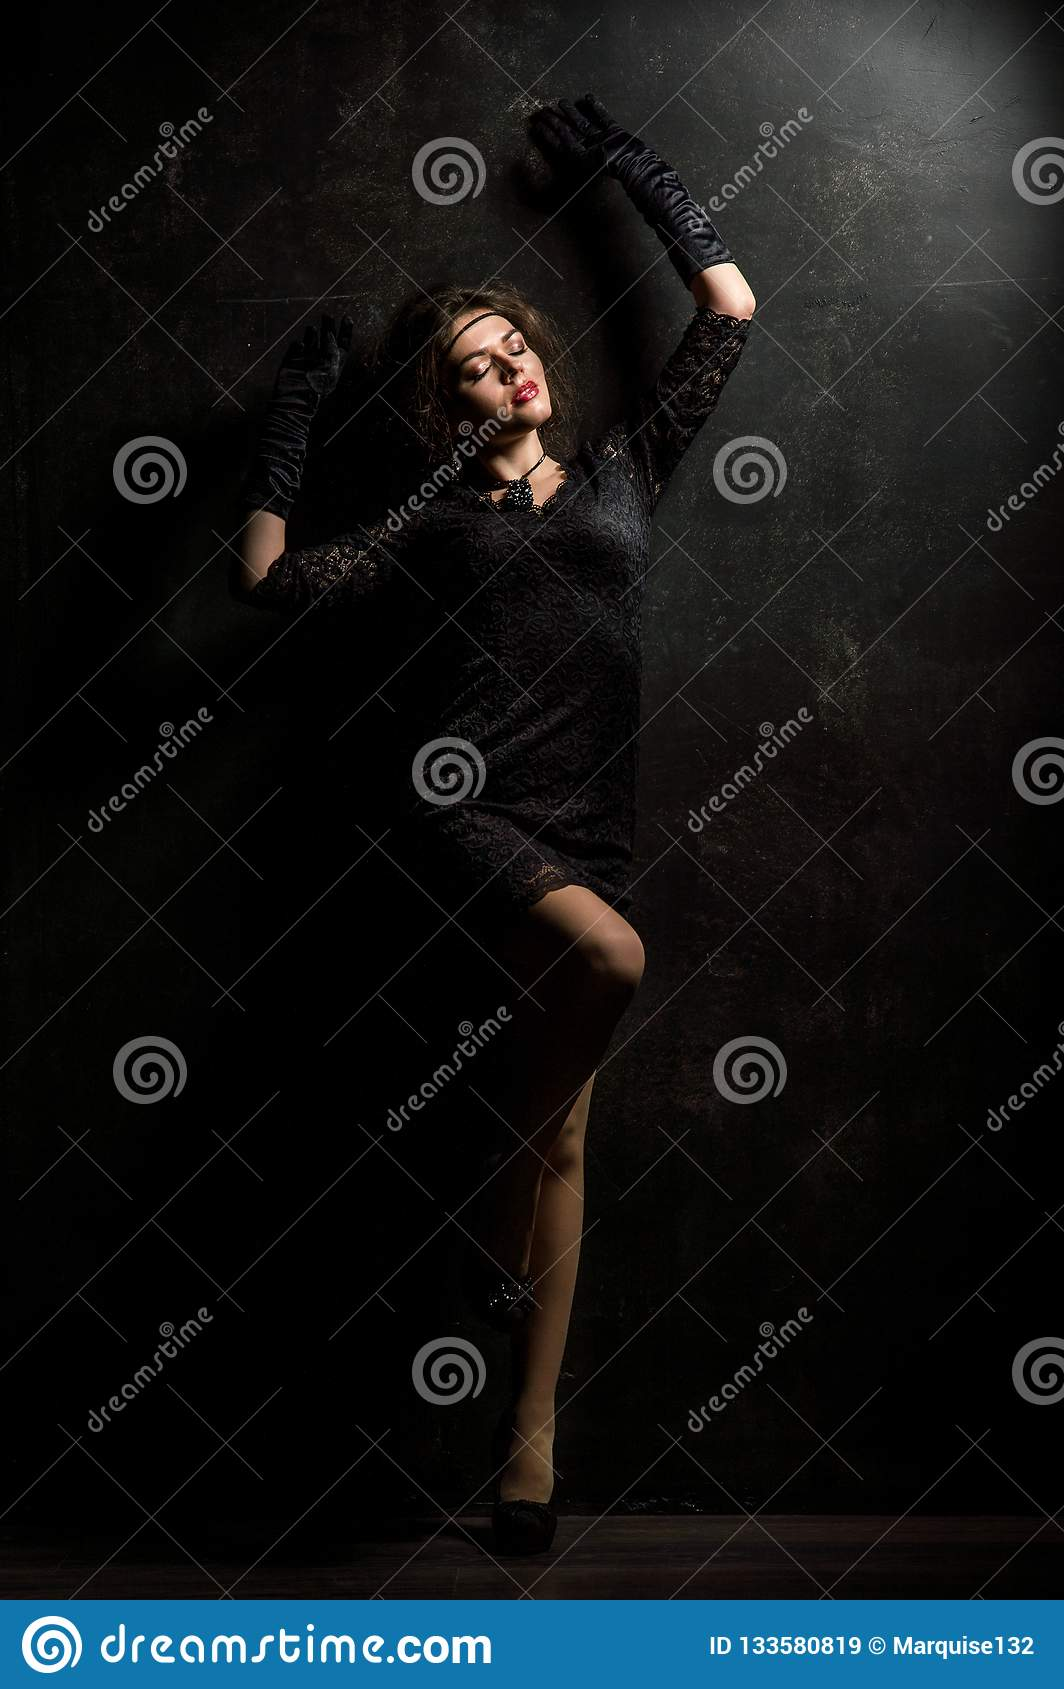 Roaring Twenties. Woman portrait in the style of Gatsby. Low key. Beautiful young woman in a lace black dress, posing sensually.